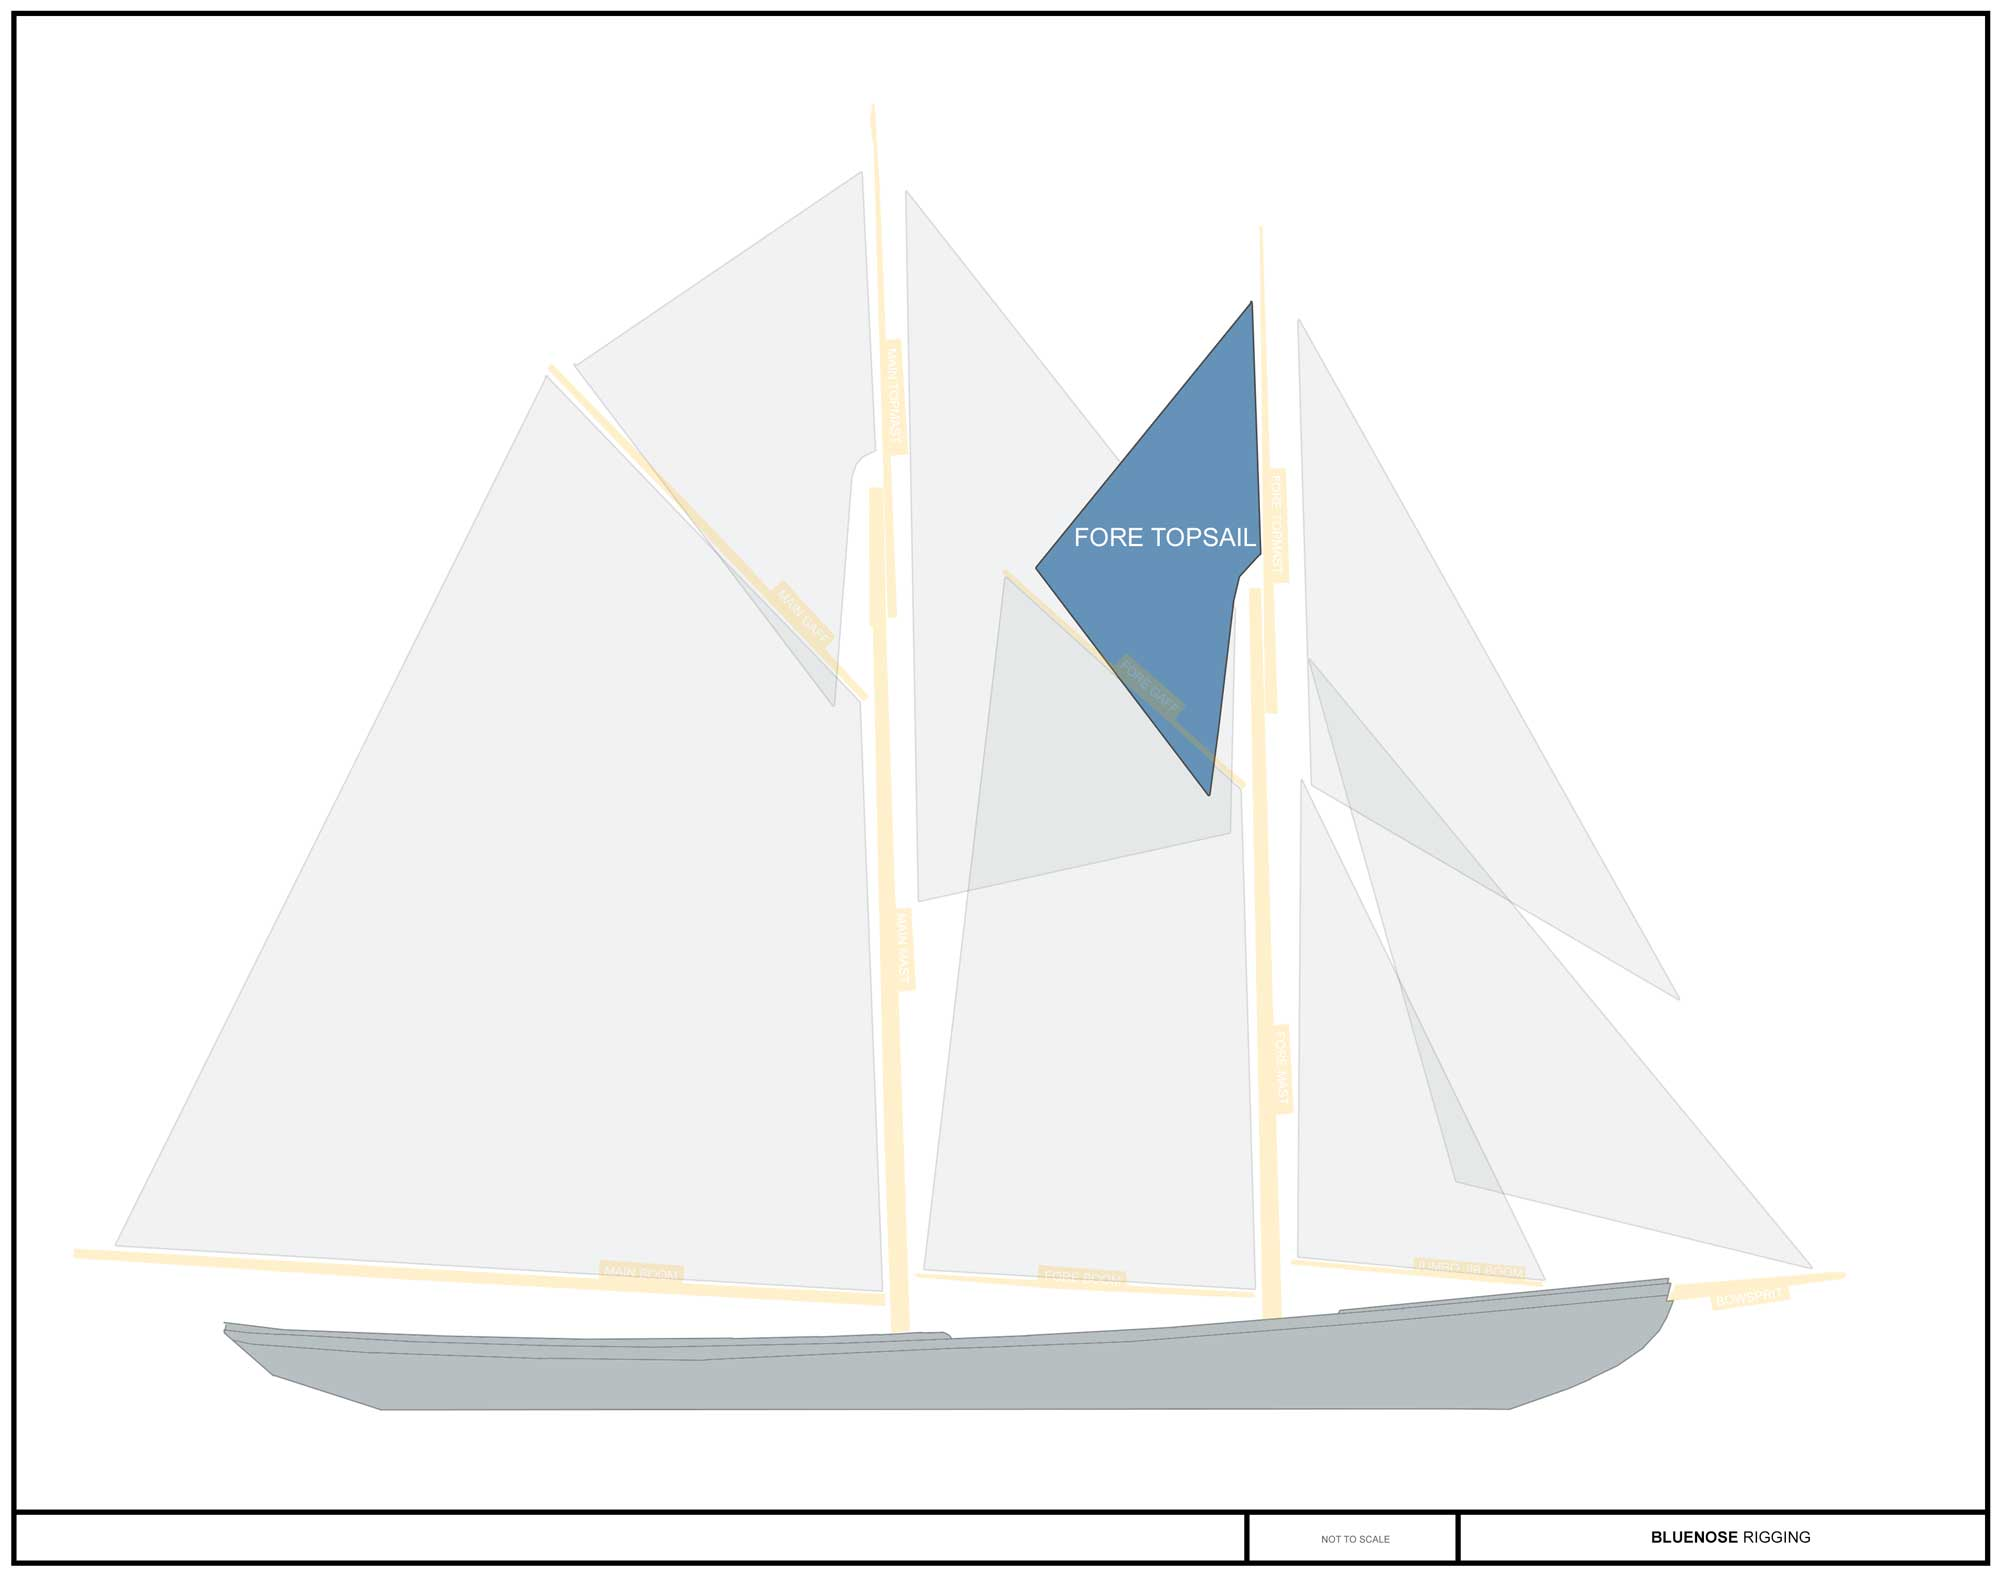 foretopsail